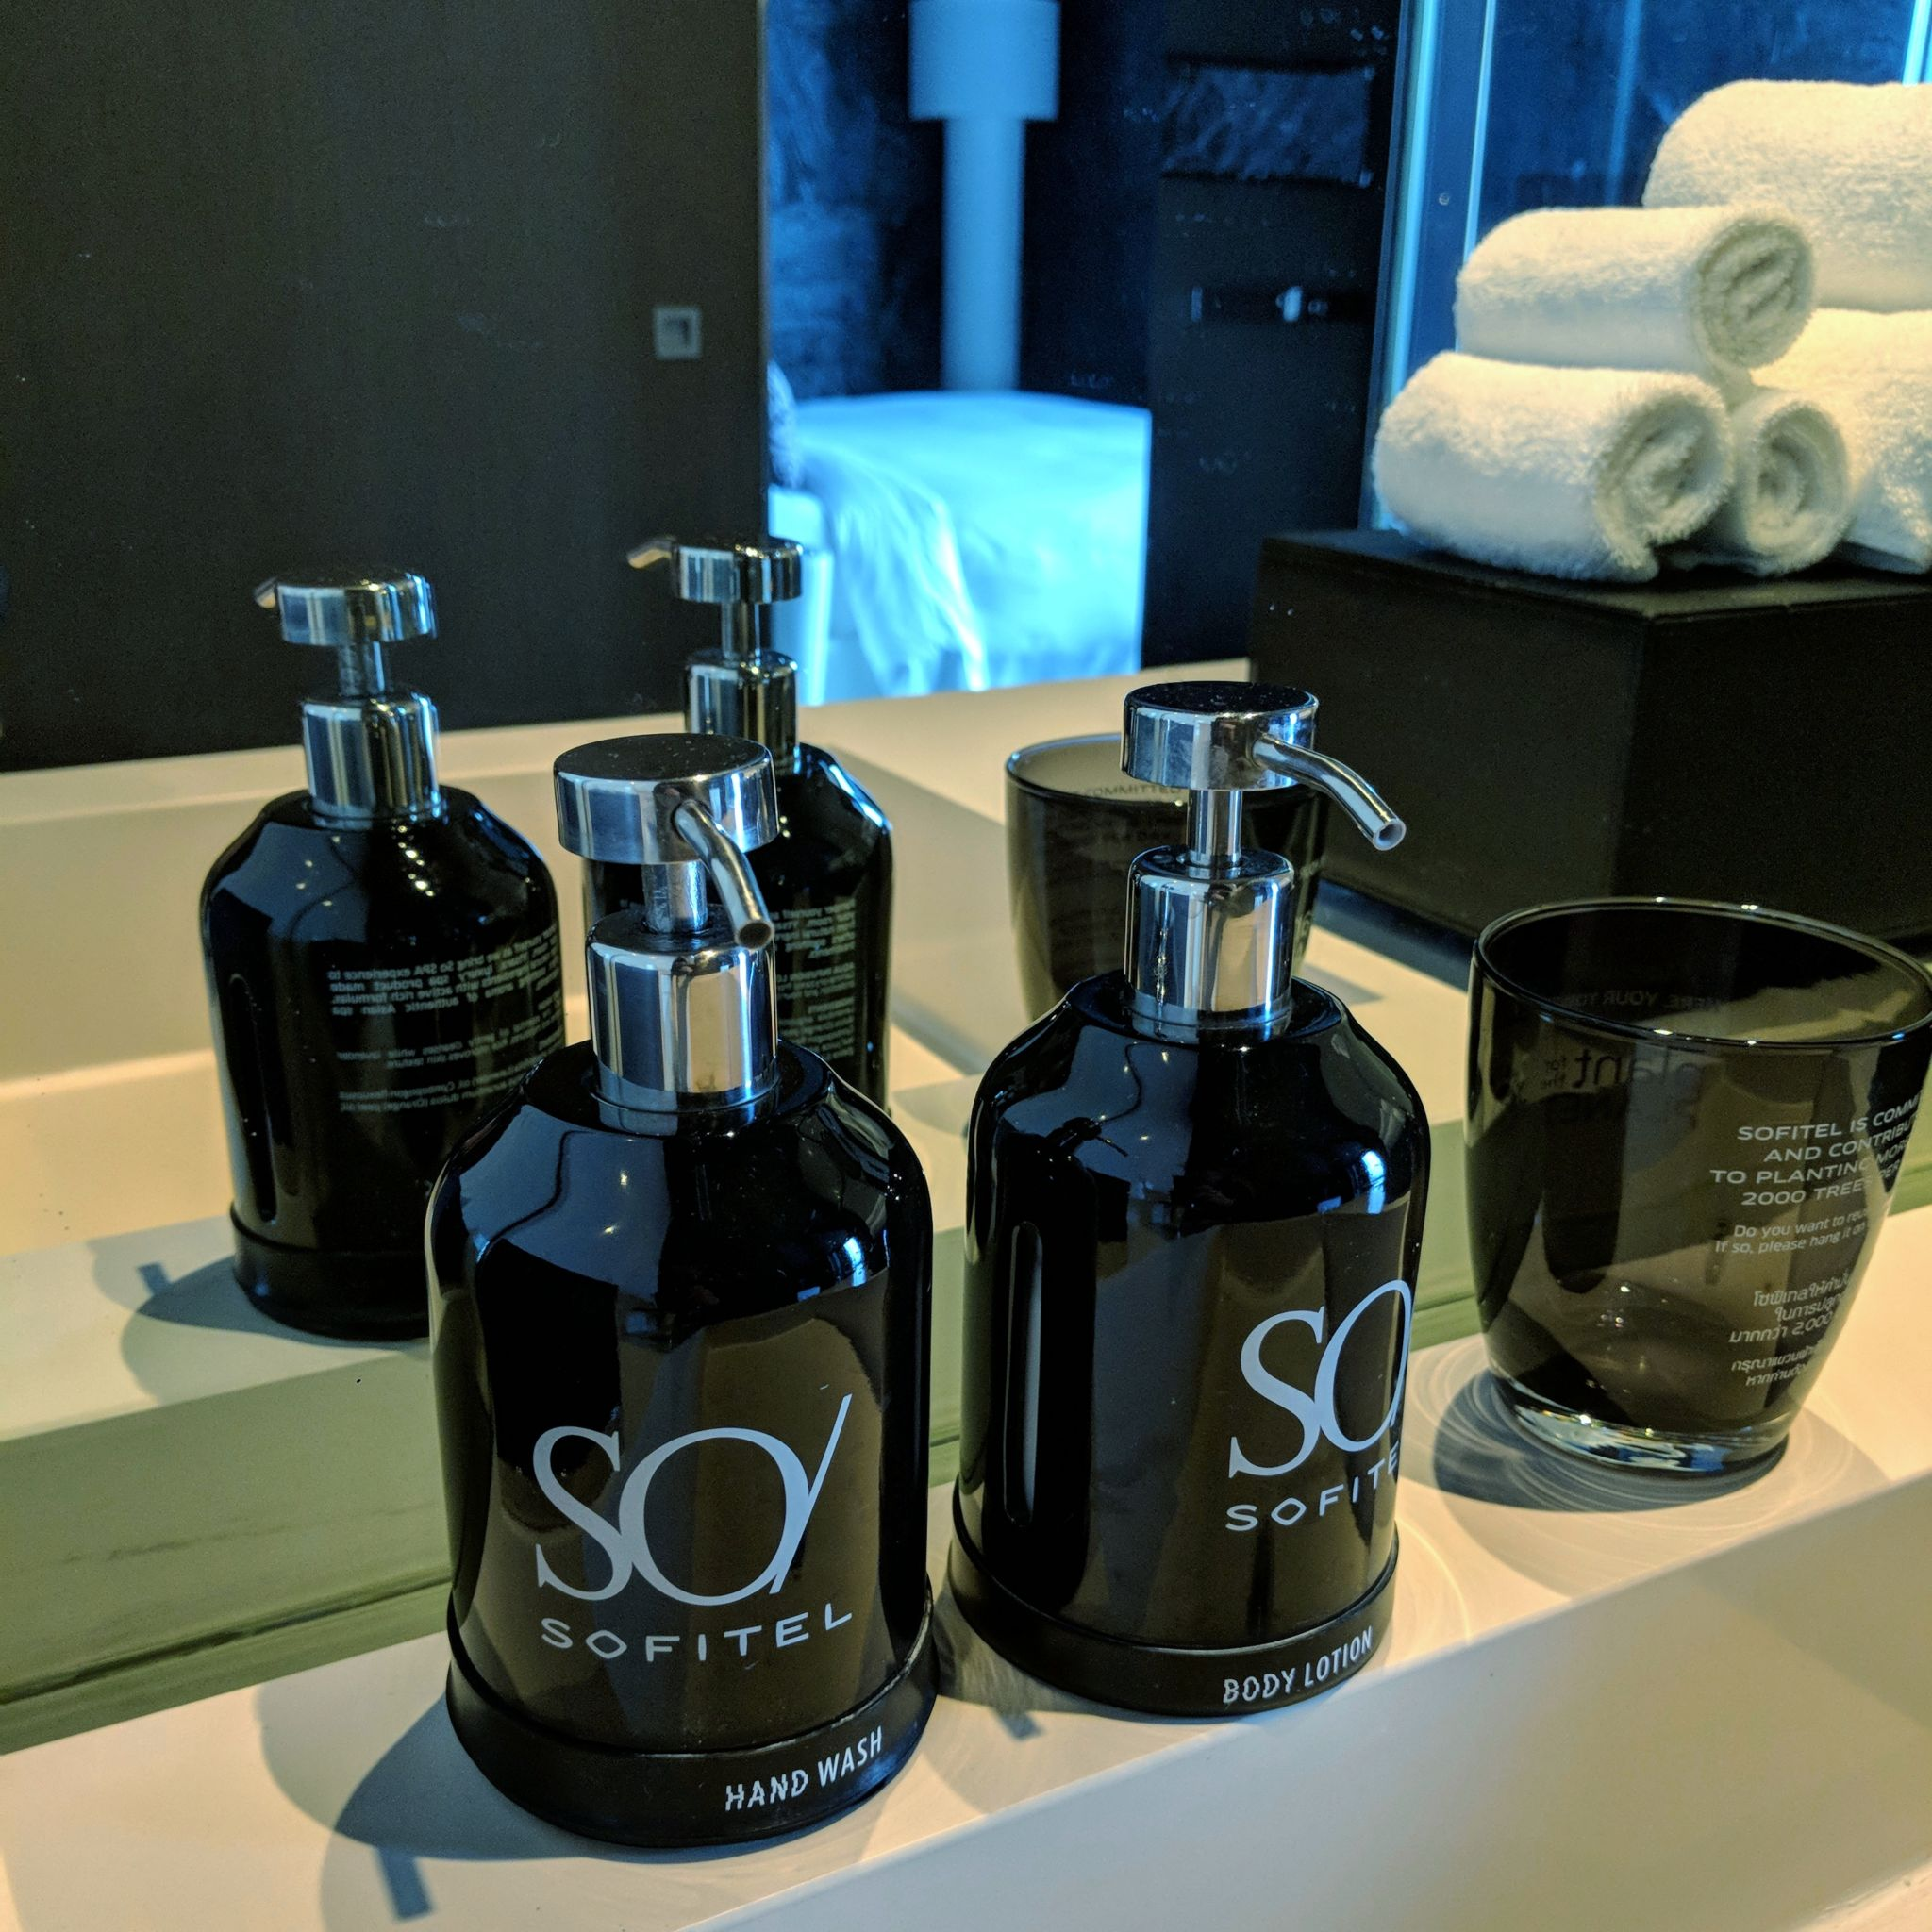 so sofitel bangkok so suite ytsara amenities